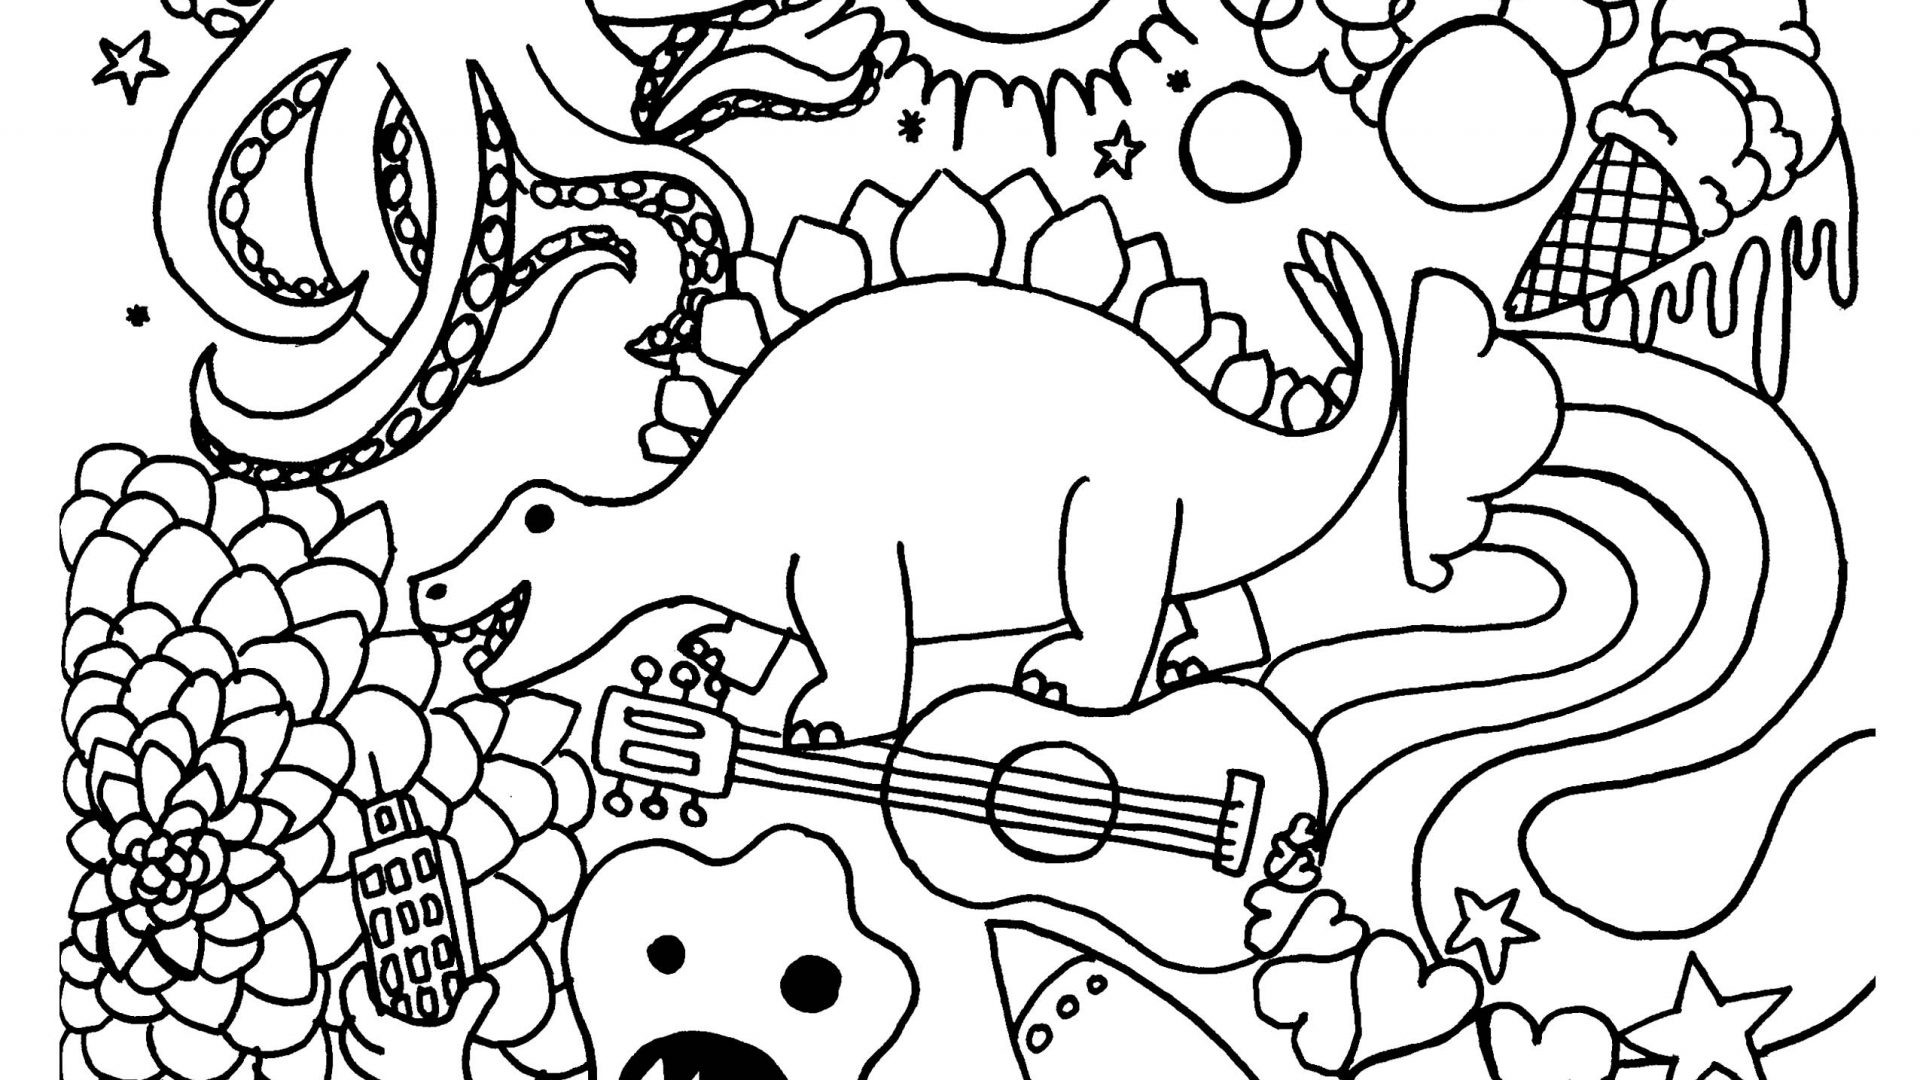 Coloring Pages Second Grade At Getcolorings